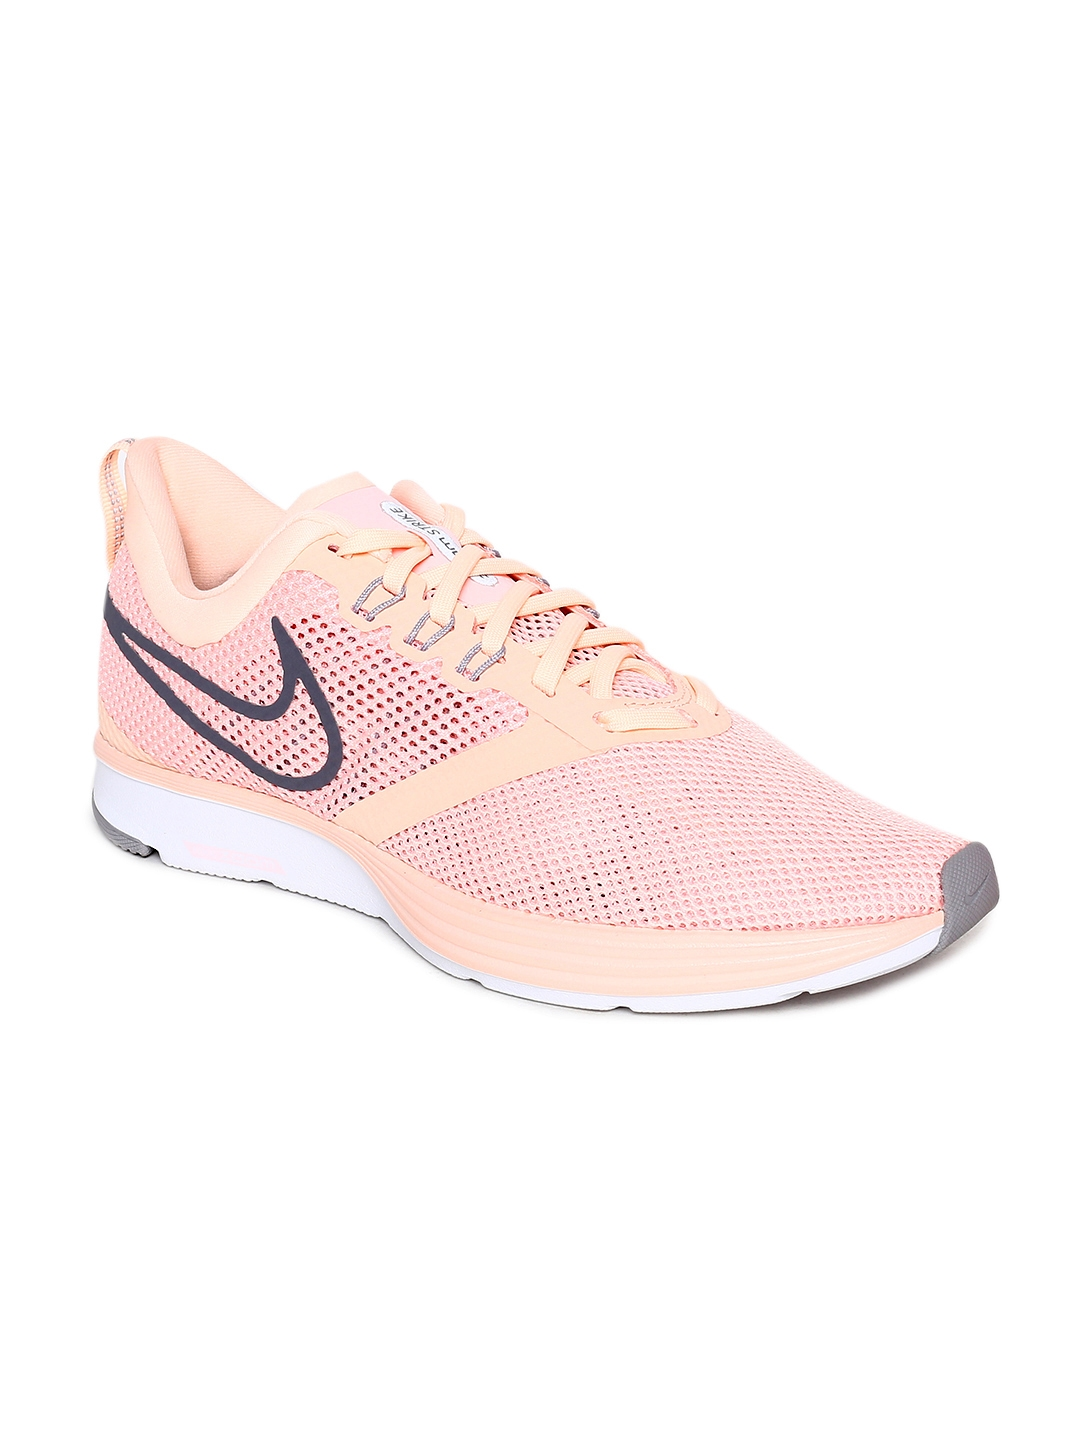 f74c6fdbe1711 Buy Nike Women ZOOM STRIKE Pink Running Shoes - Sports Shoes for ...